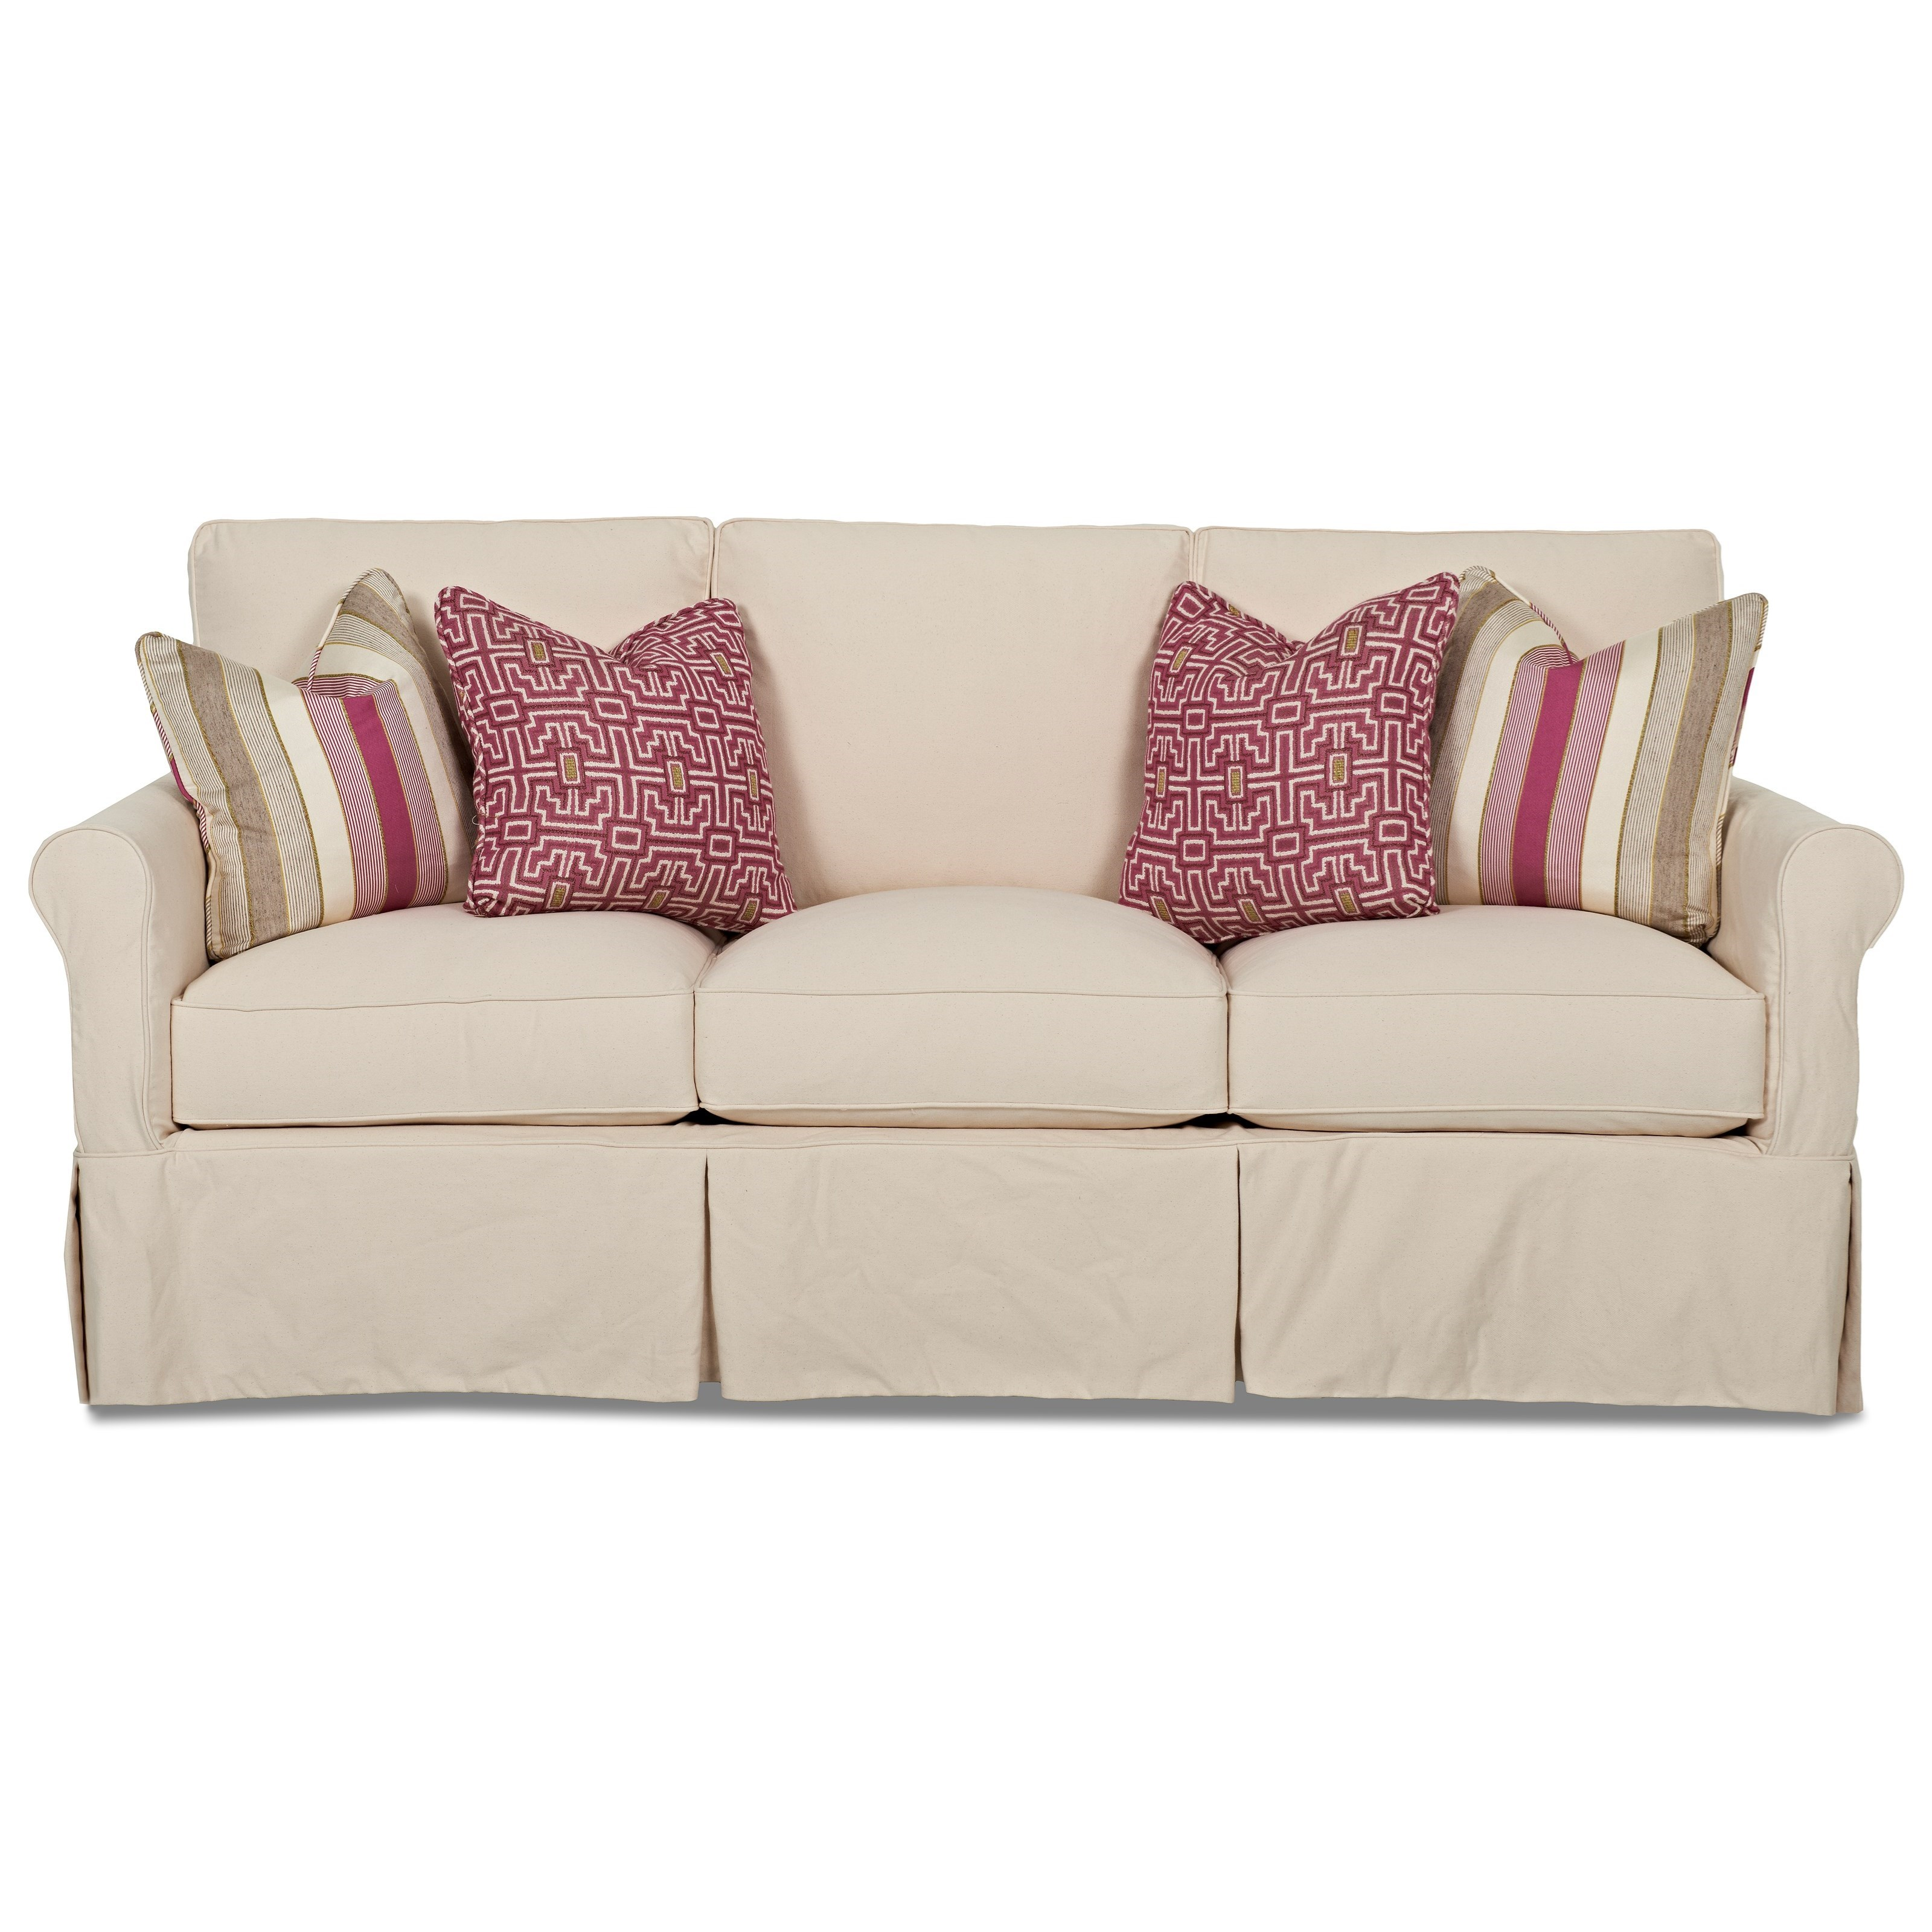 Klaussner Kenmore Sofa with Slipcover - Item Number: D7122 S